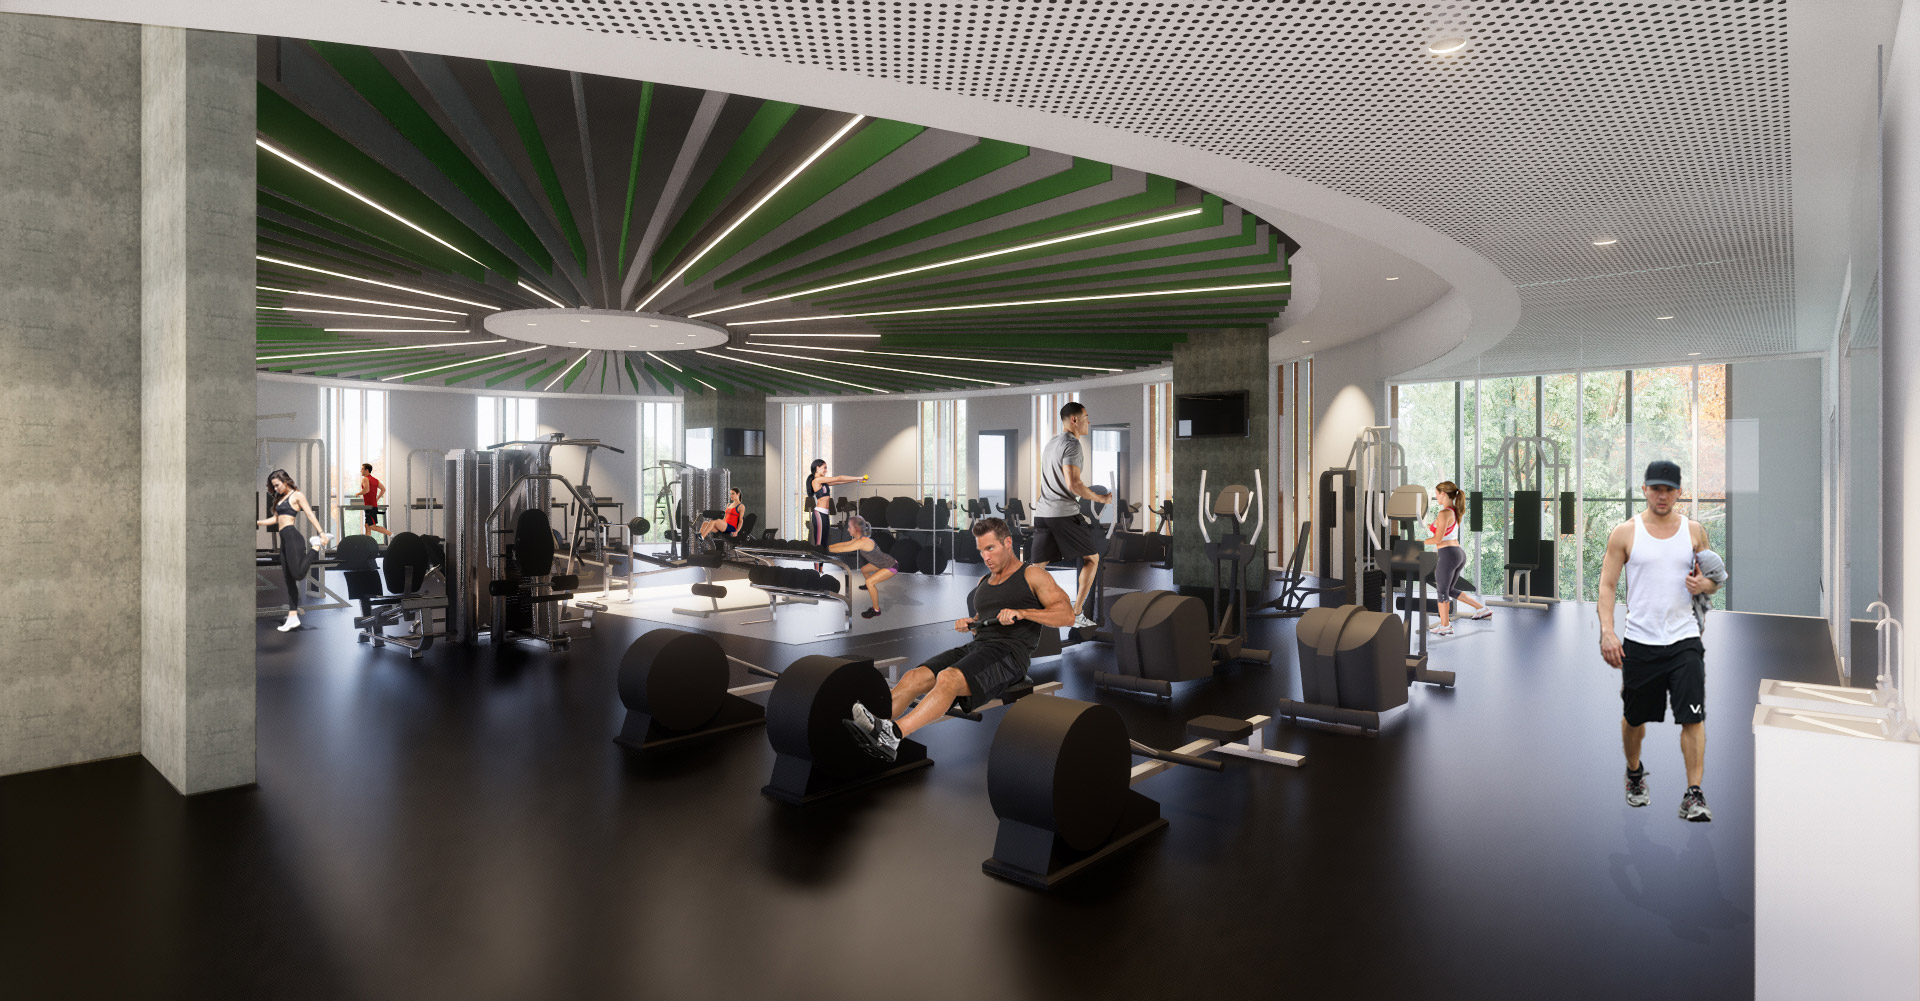 291aaa72ab84e Green light for £20m sports facility transformation | About ...